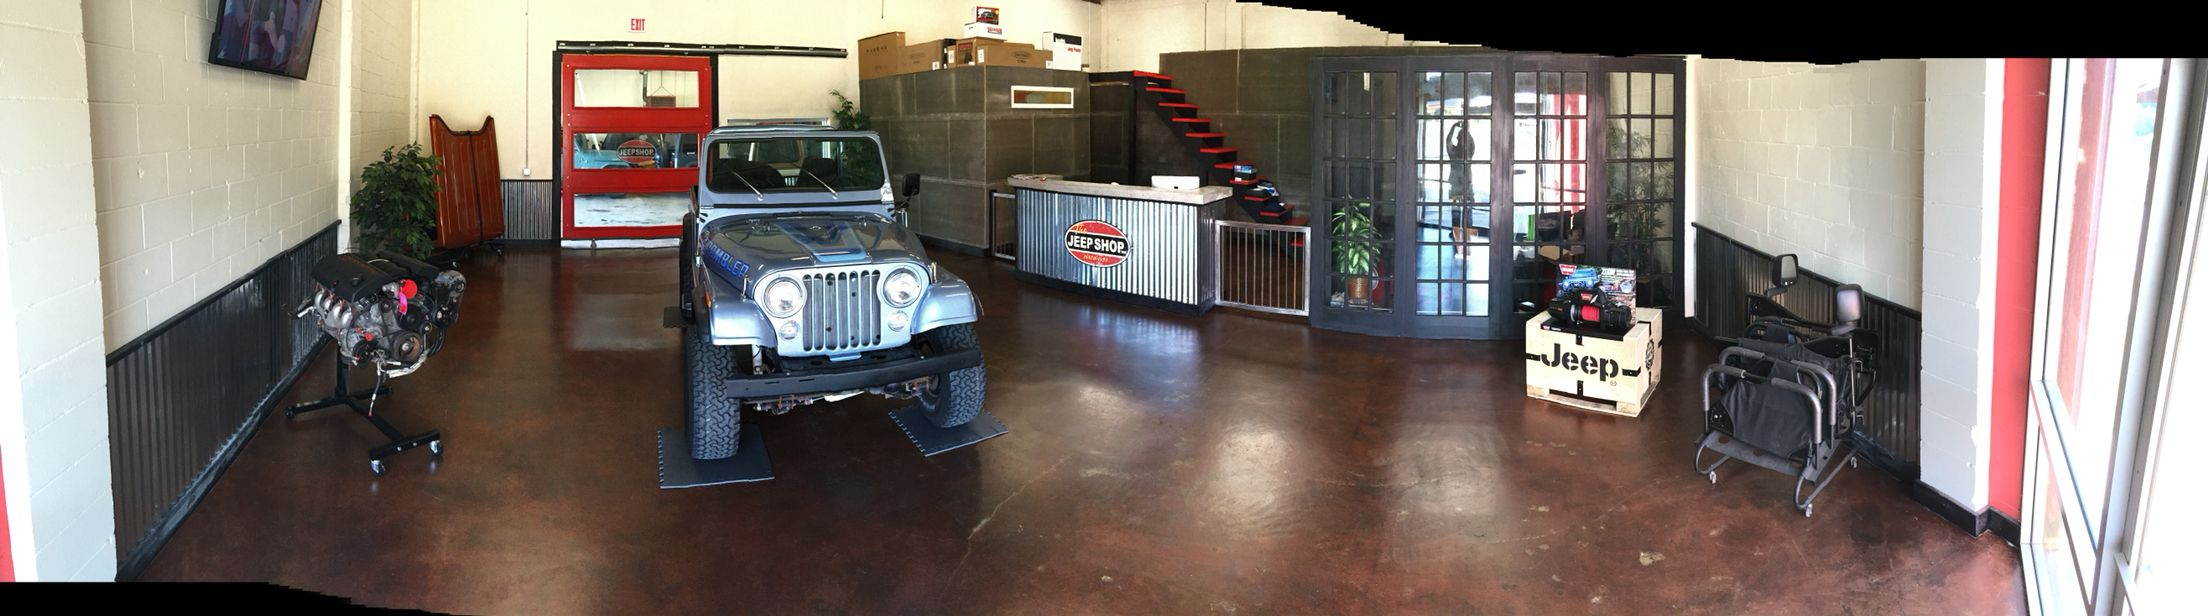 Jeepshopusa Welcome To Our New Showroom In Jacksonville Florida Jeep Shop Shop Usa Jacksonville Florida